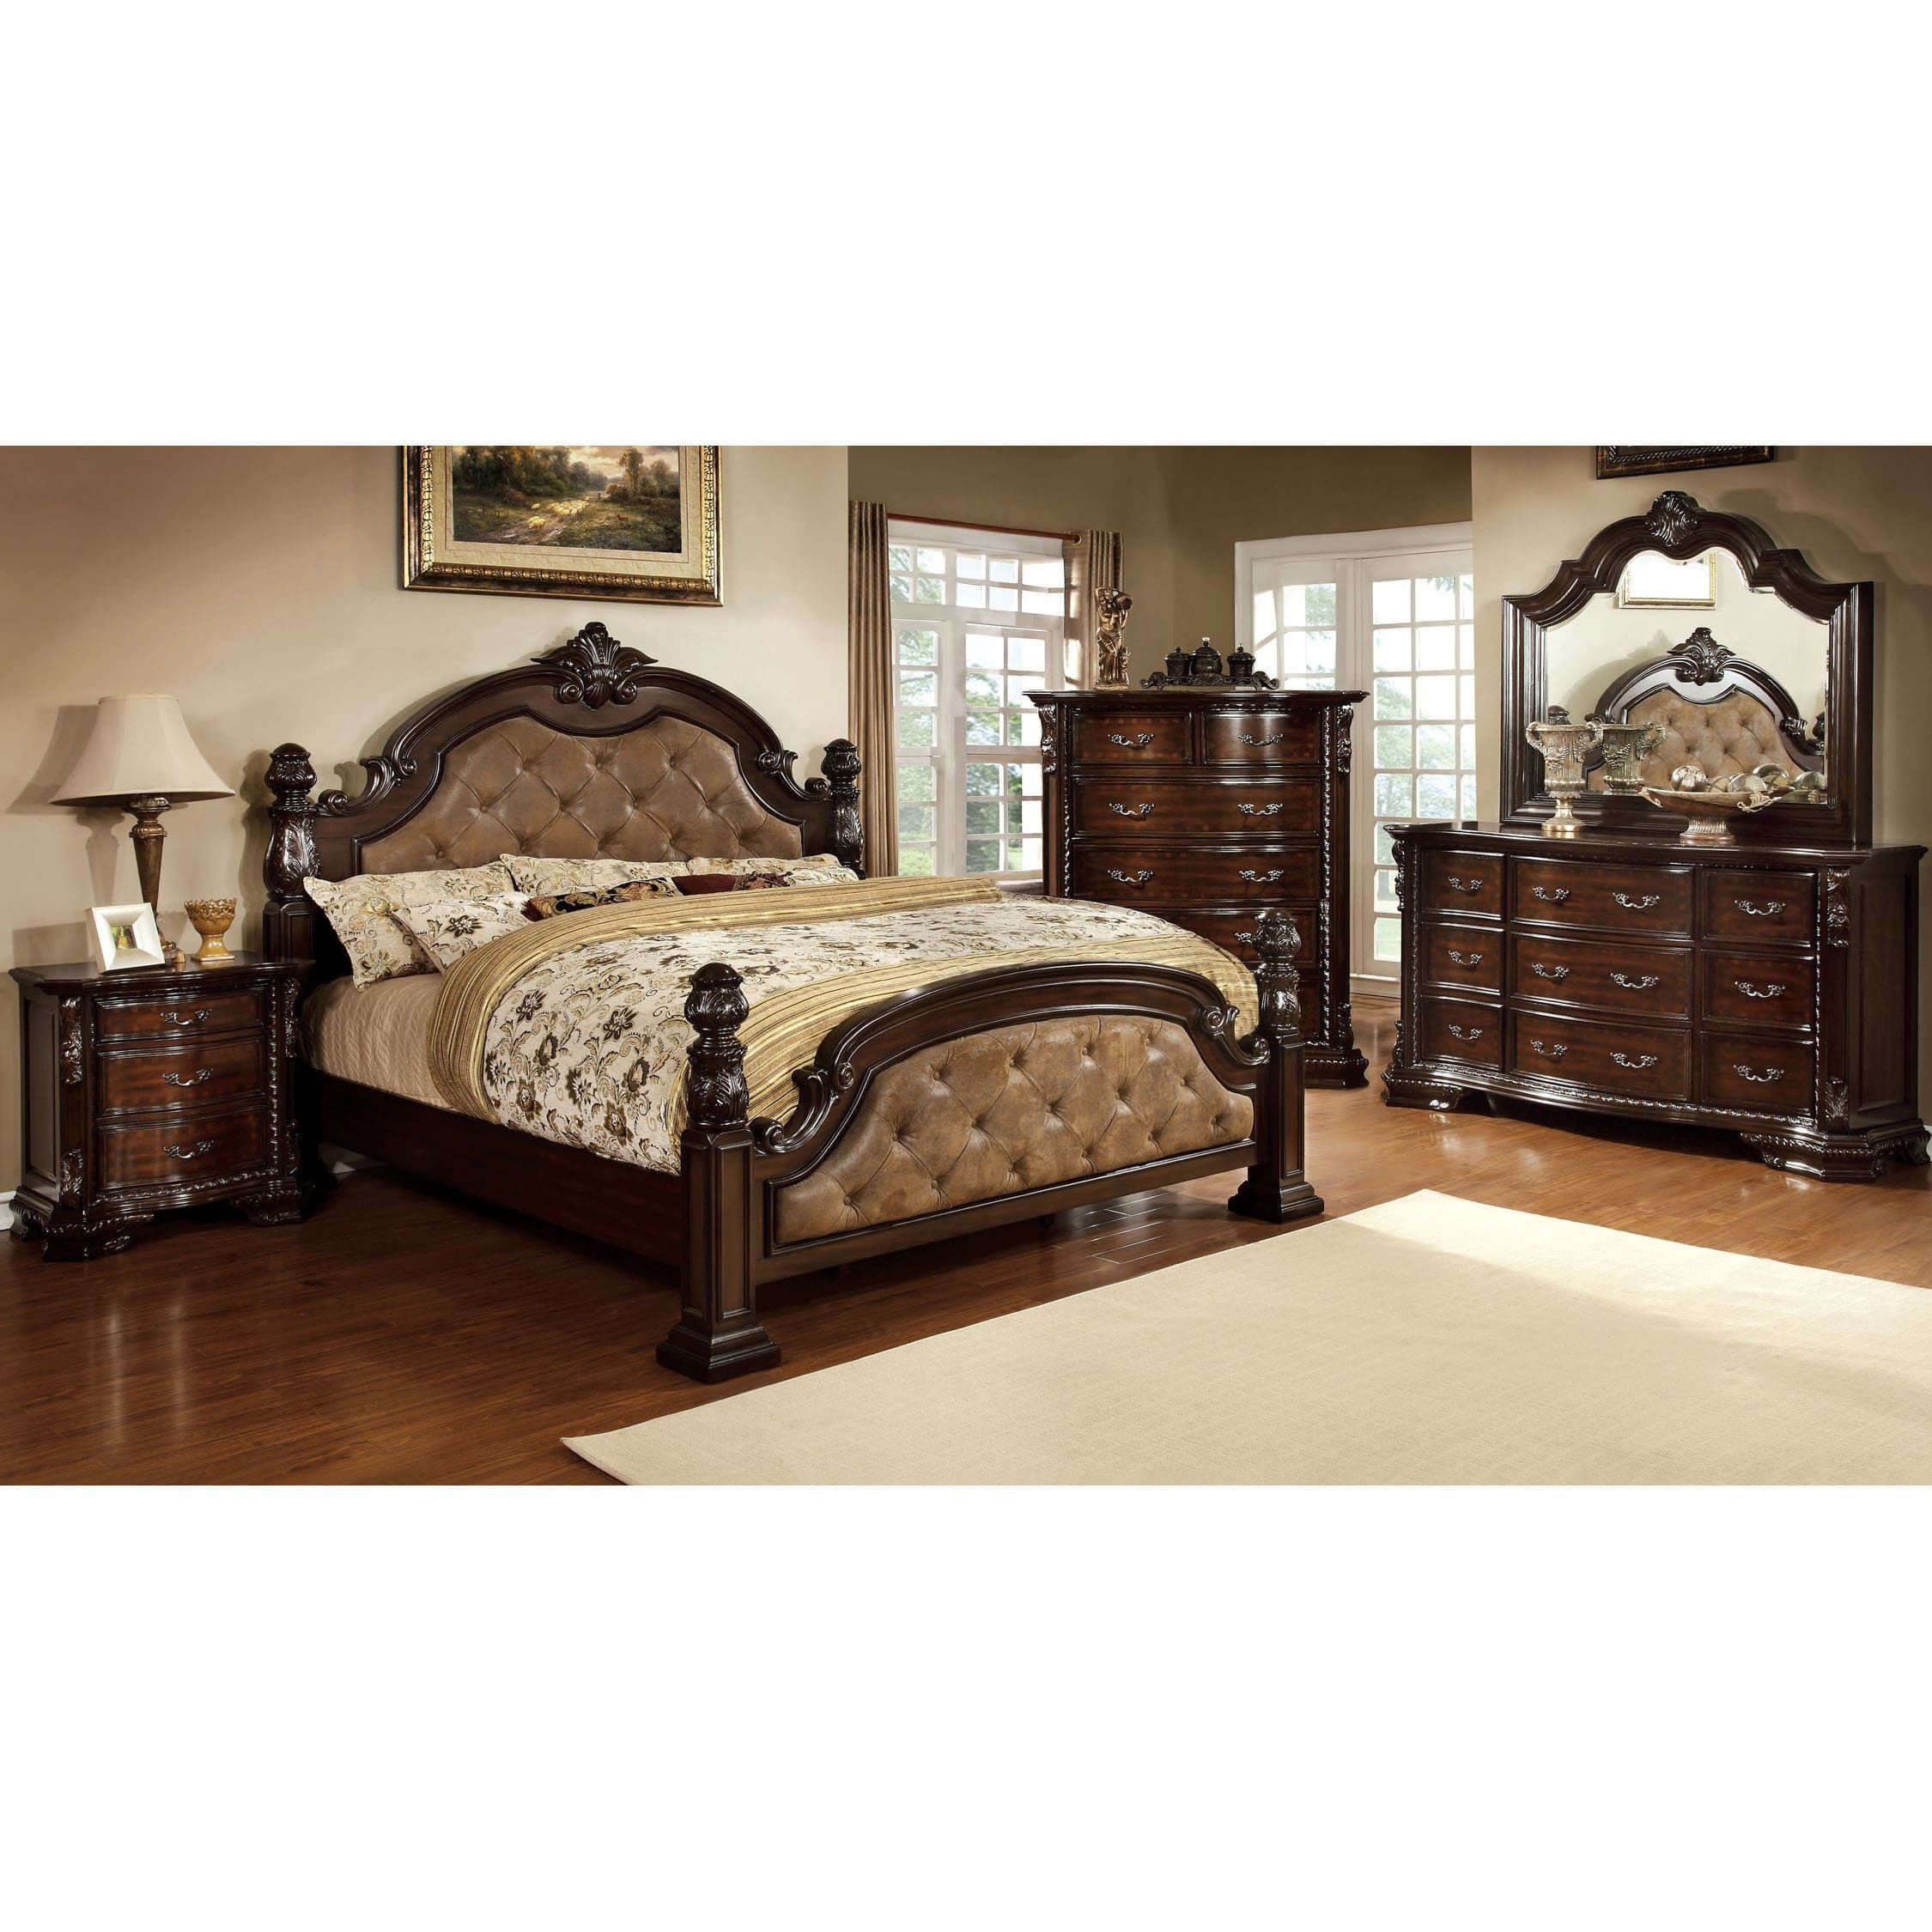 Cal King Bedroom Set New Kassania Traditional 4 Piece Bedroom Set by Foa California